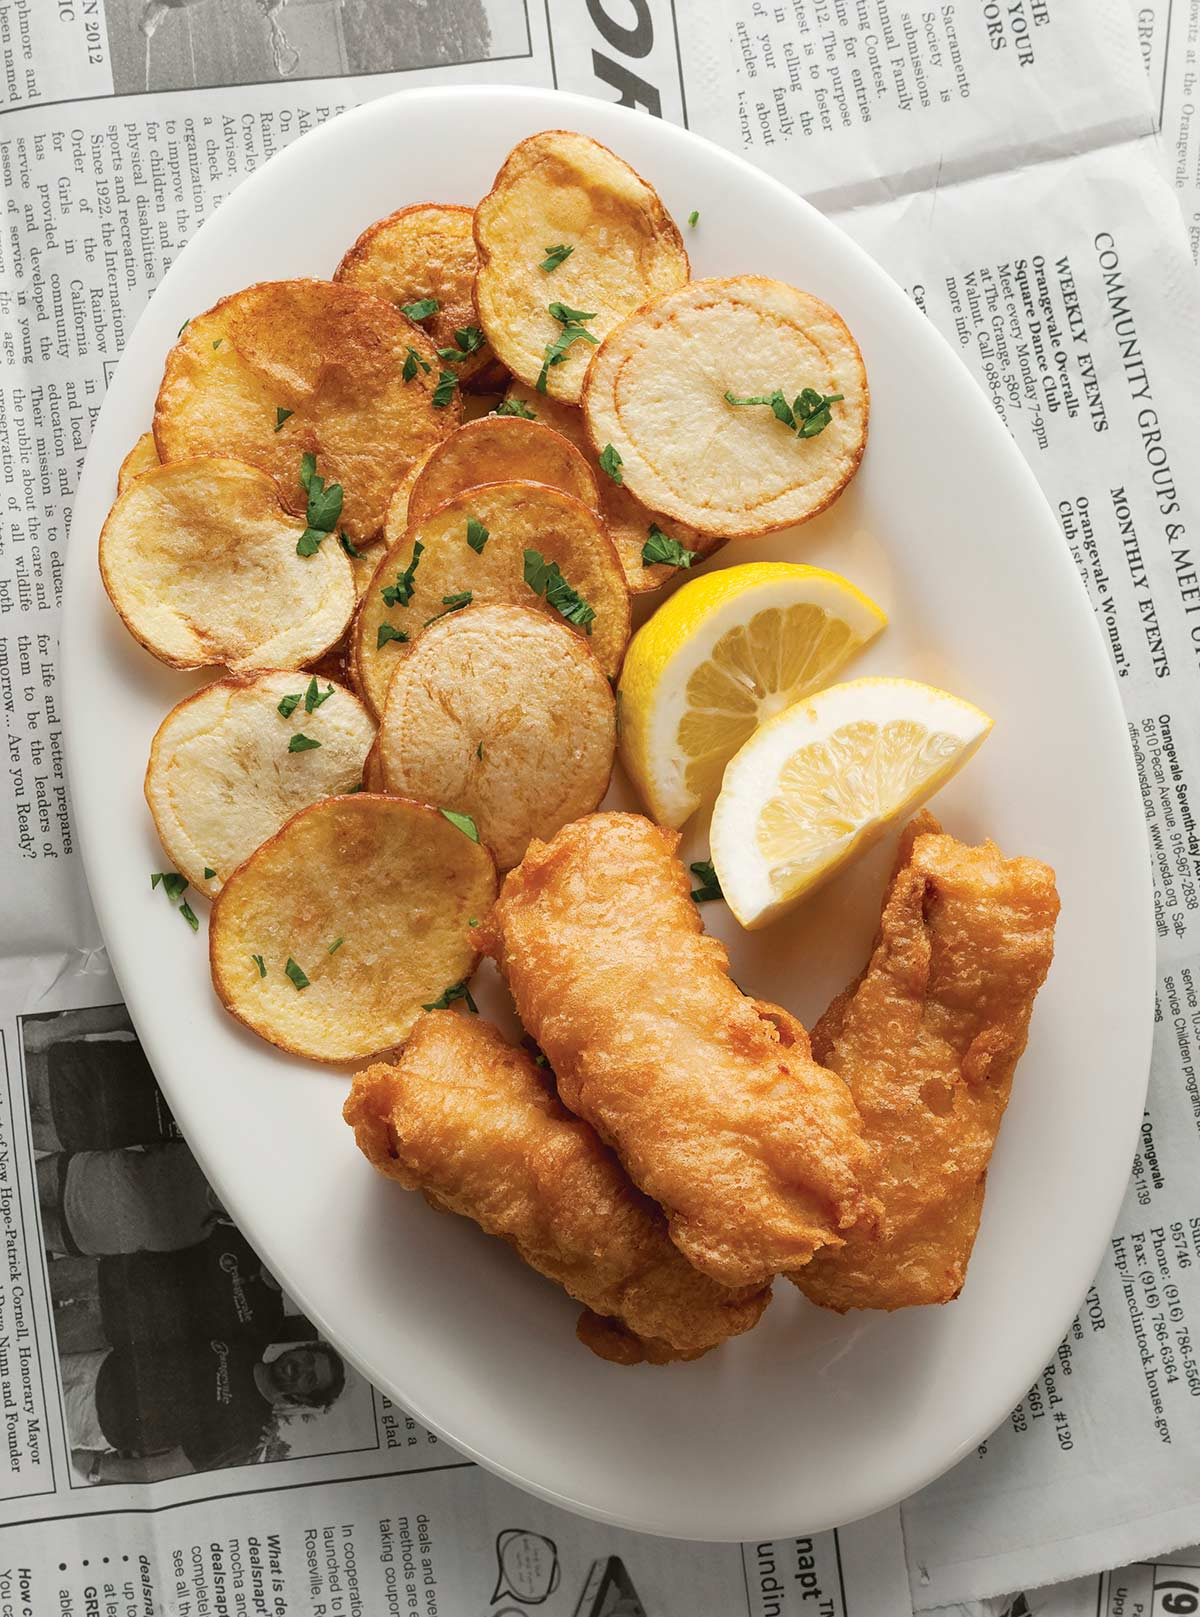 A plate of beer battered fish and chips